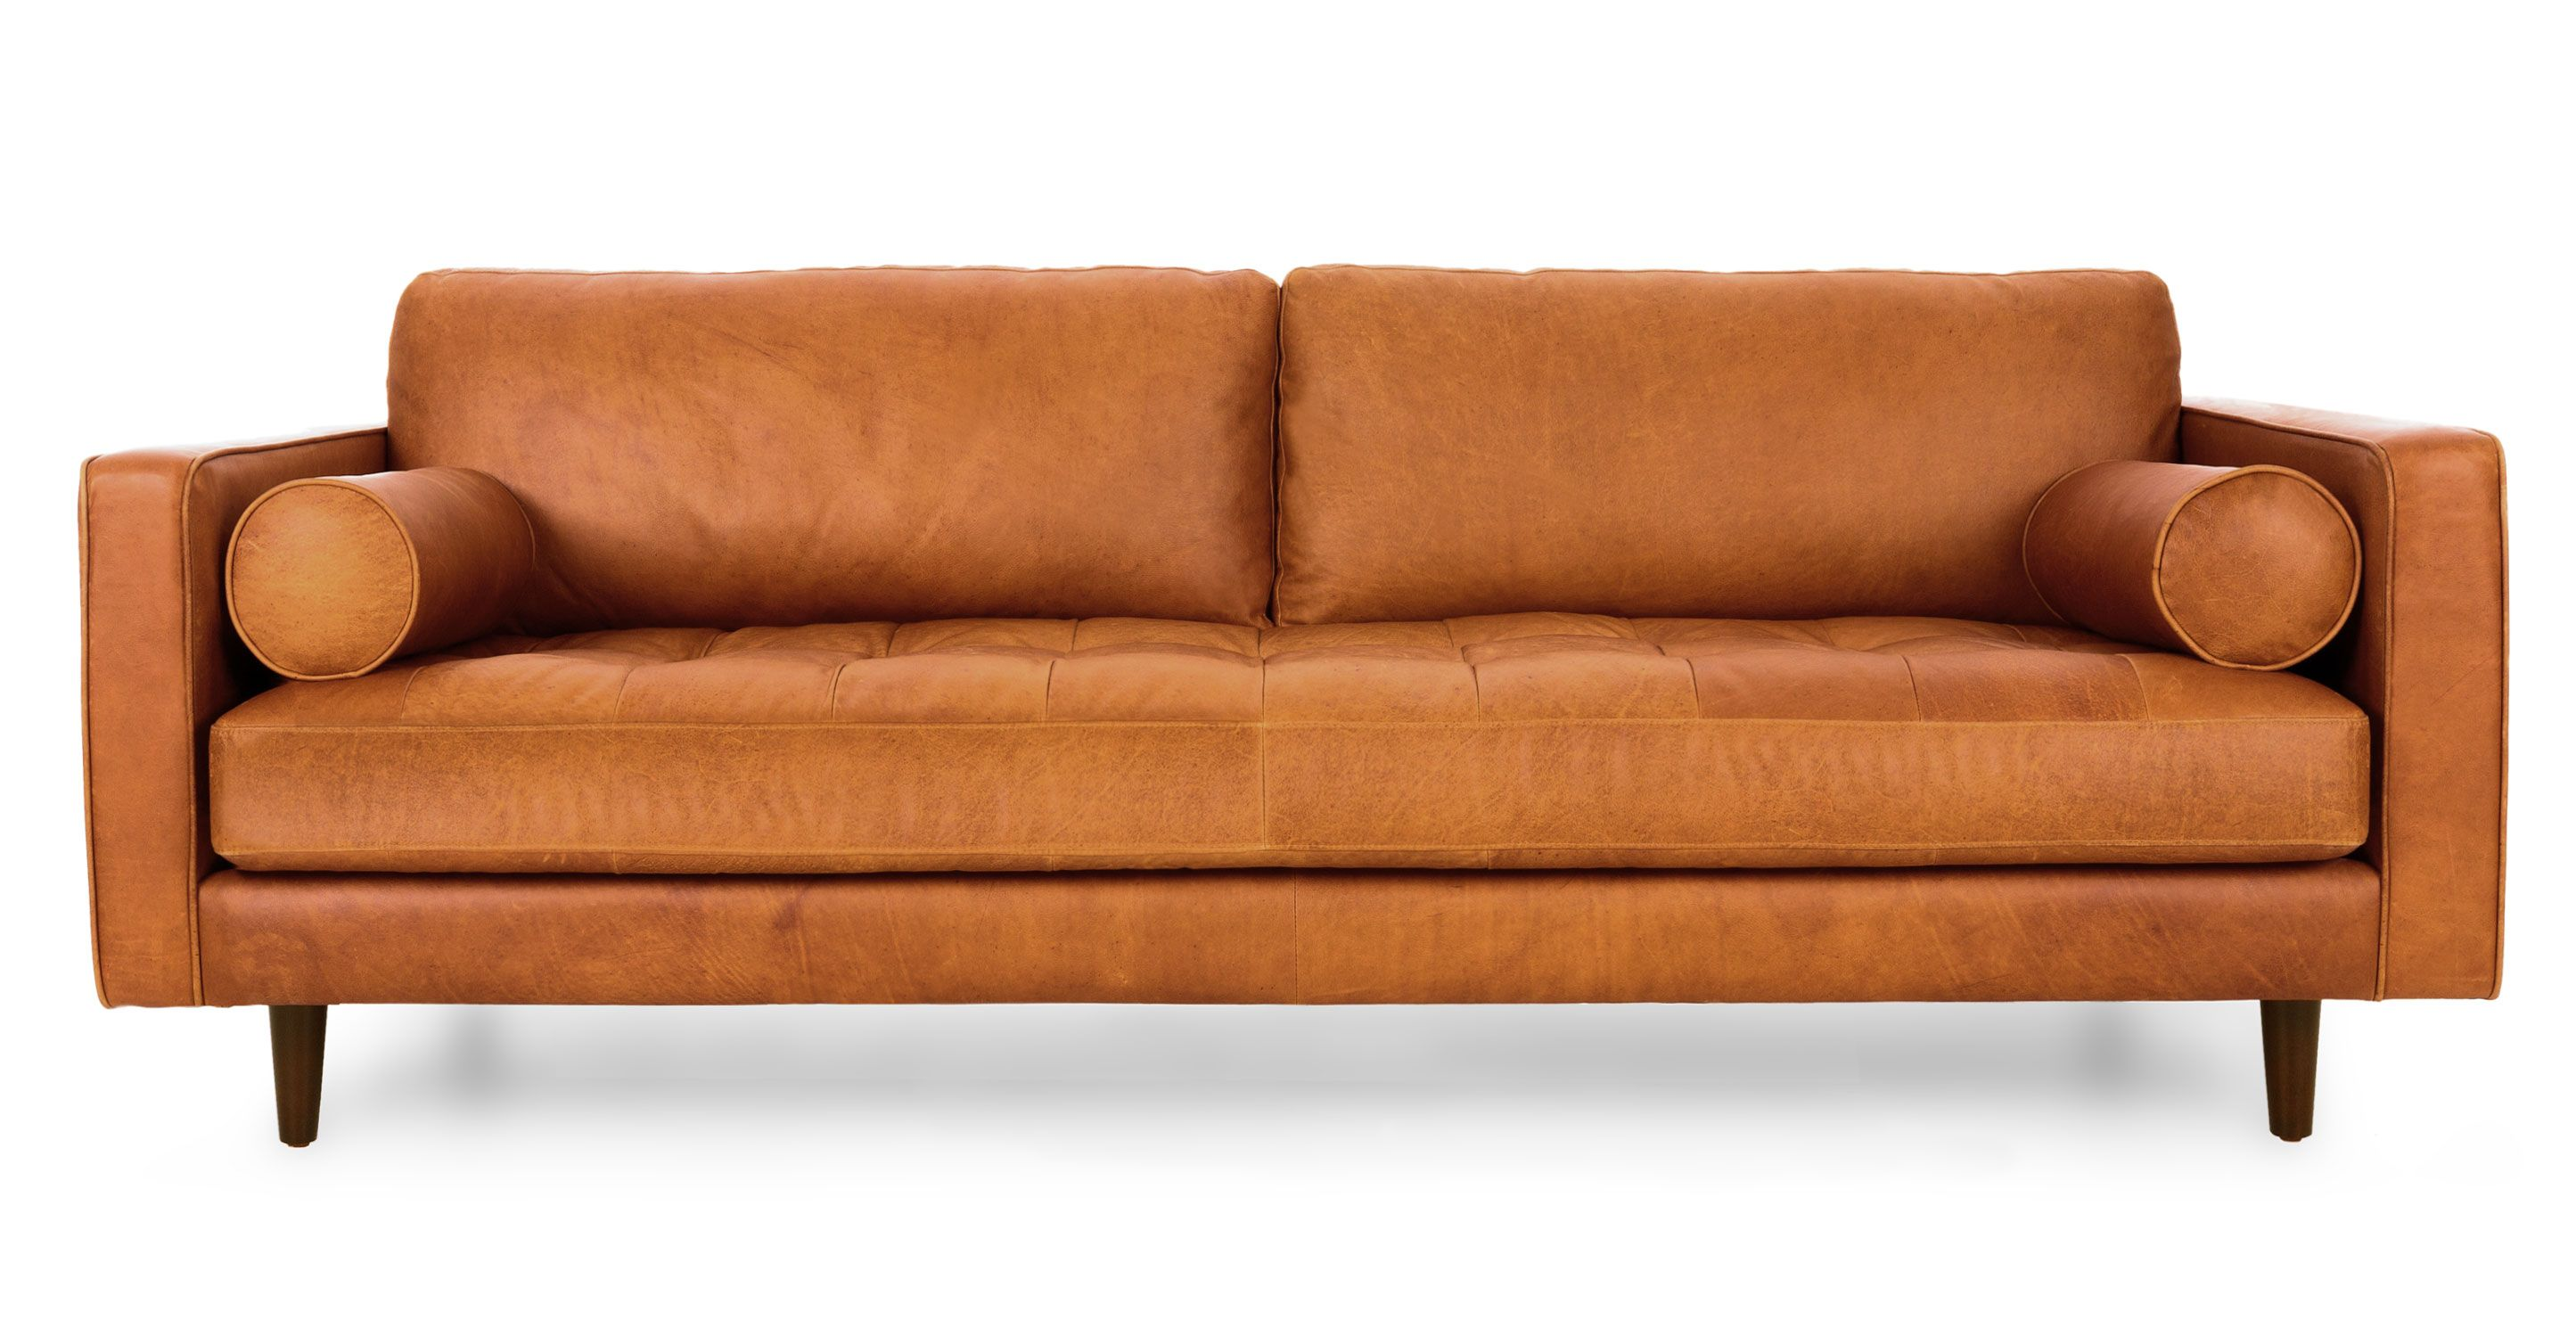 Couch Modern Tan Brown Leather Sofa Italian Leather Article Sven